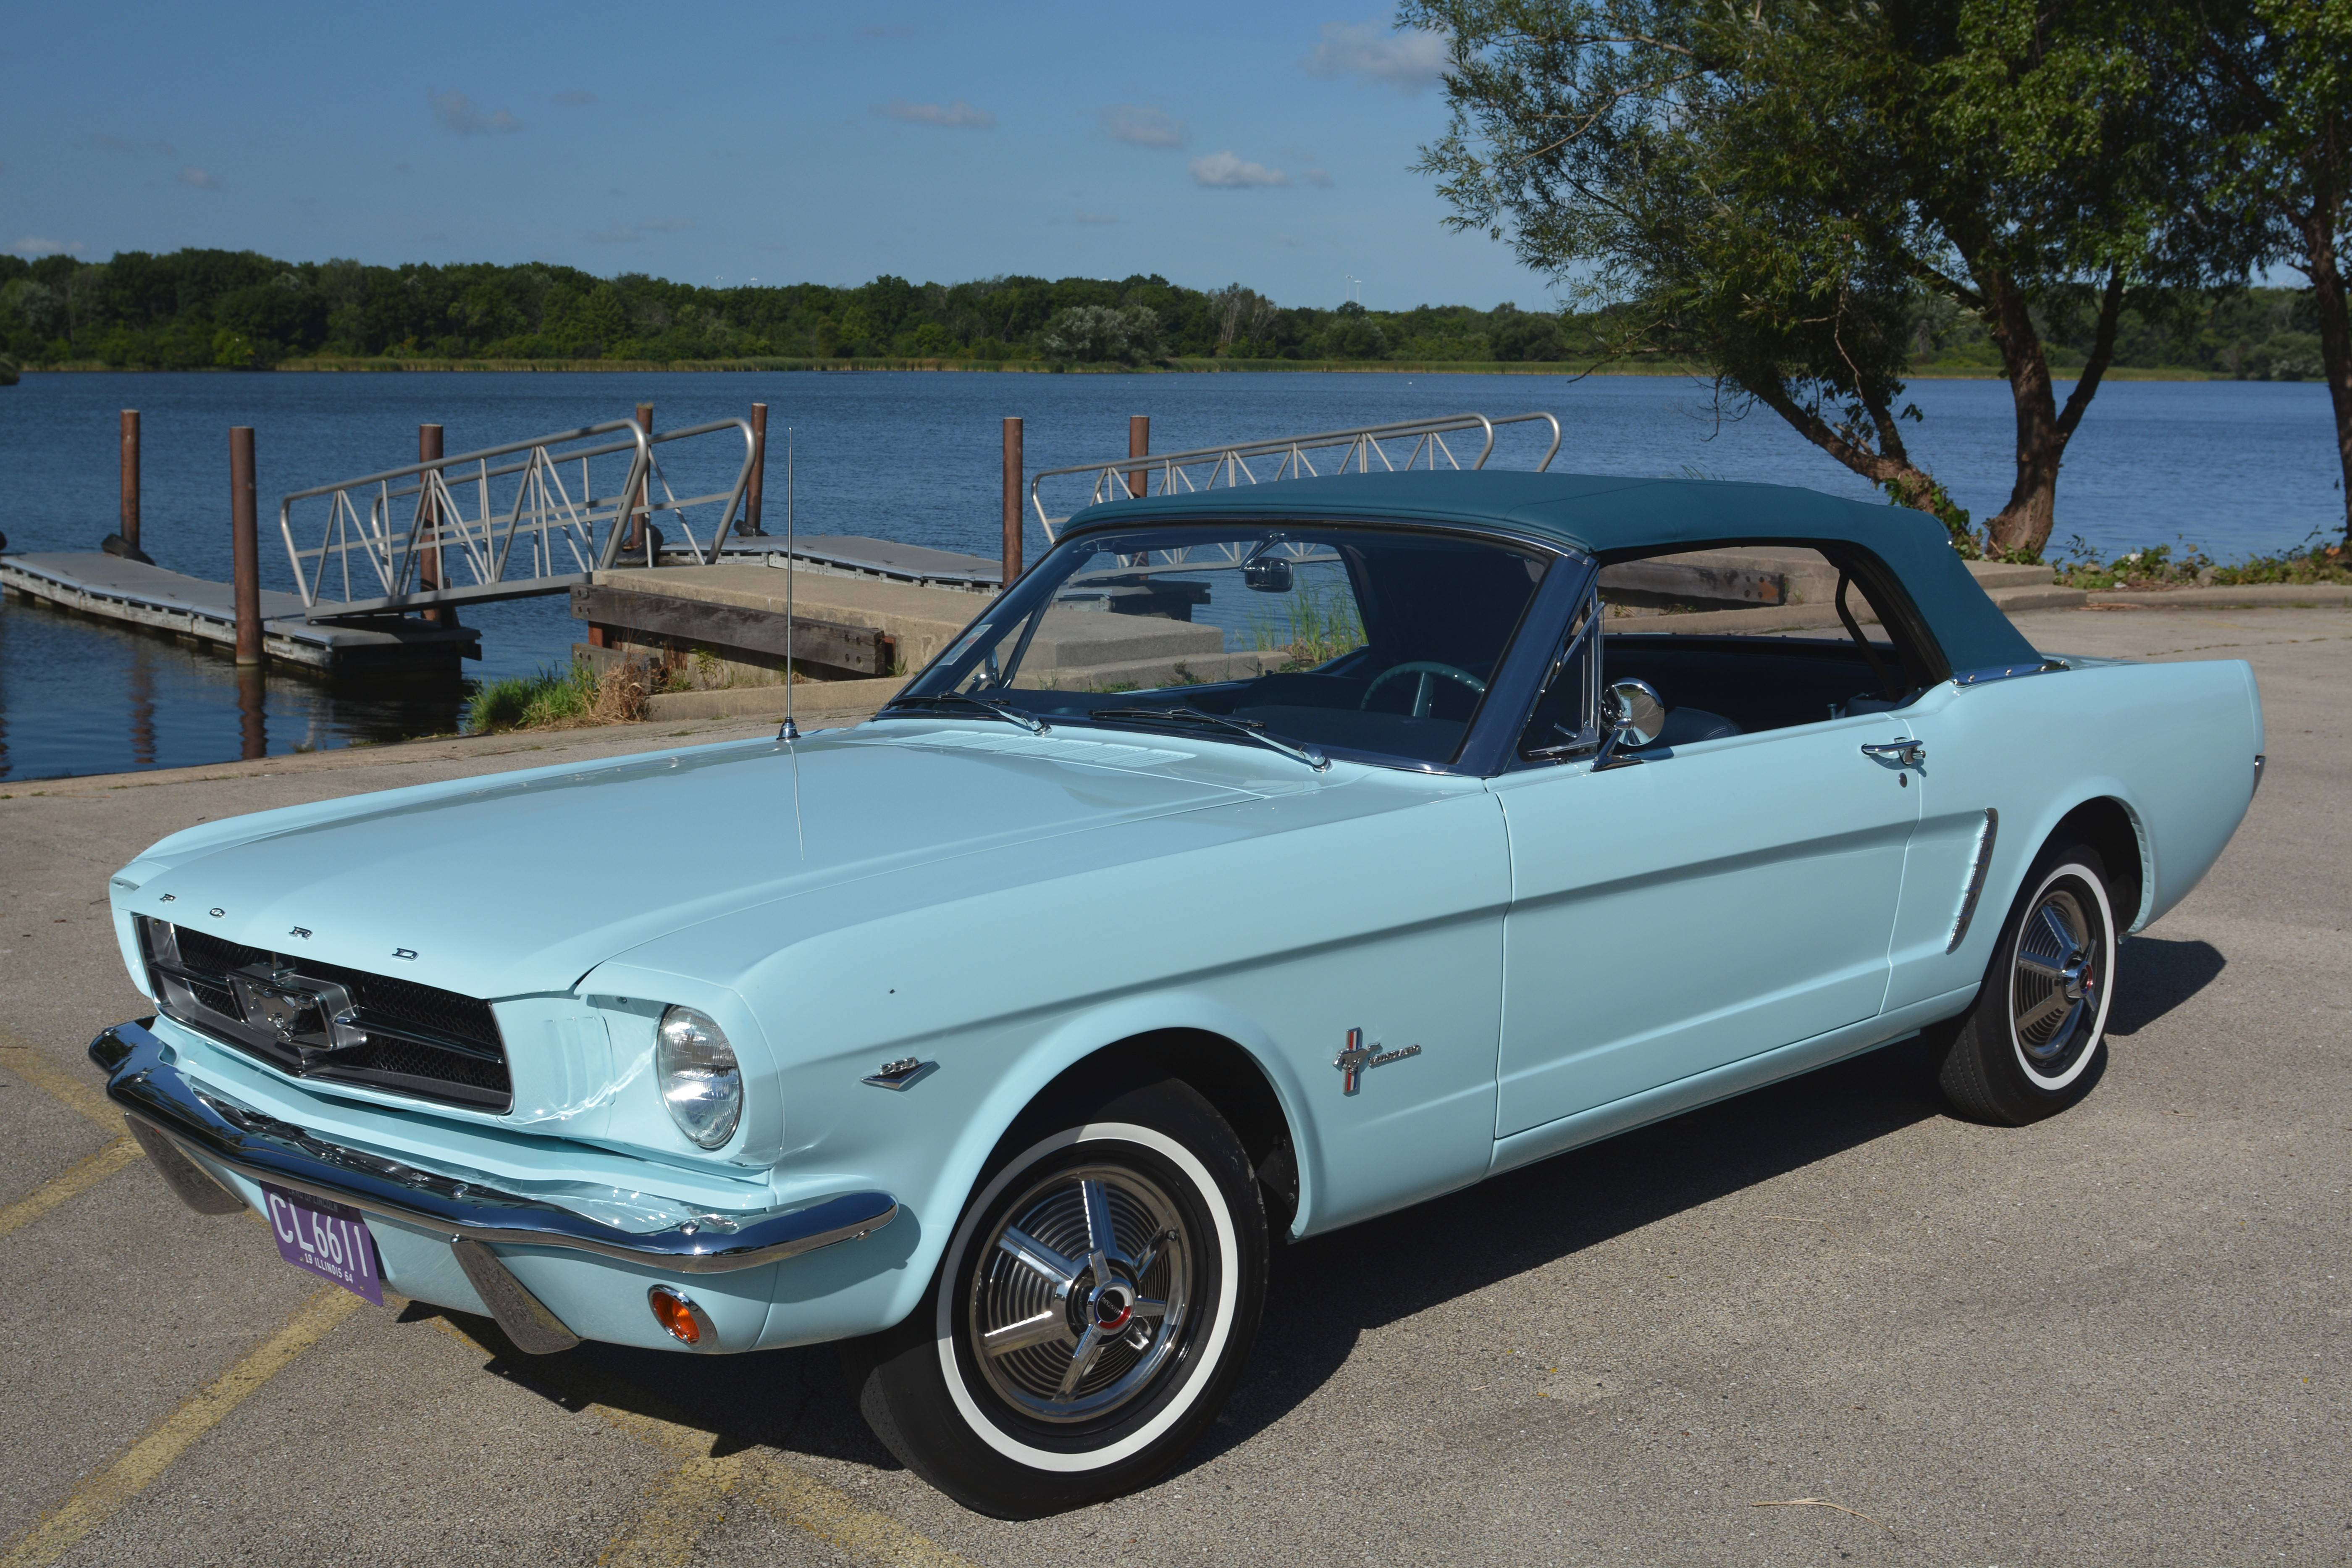 While still a college student 50 years ago, Gail Wise of Park Ridge bought this 1964½ Ford Mustang two days before the new model was to go on sale to the public.